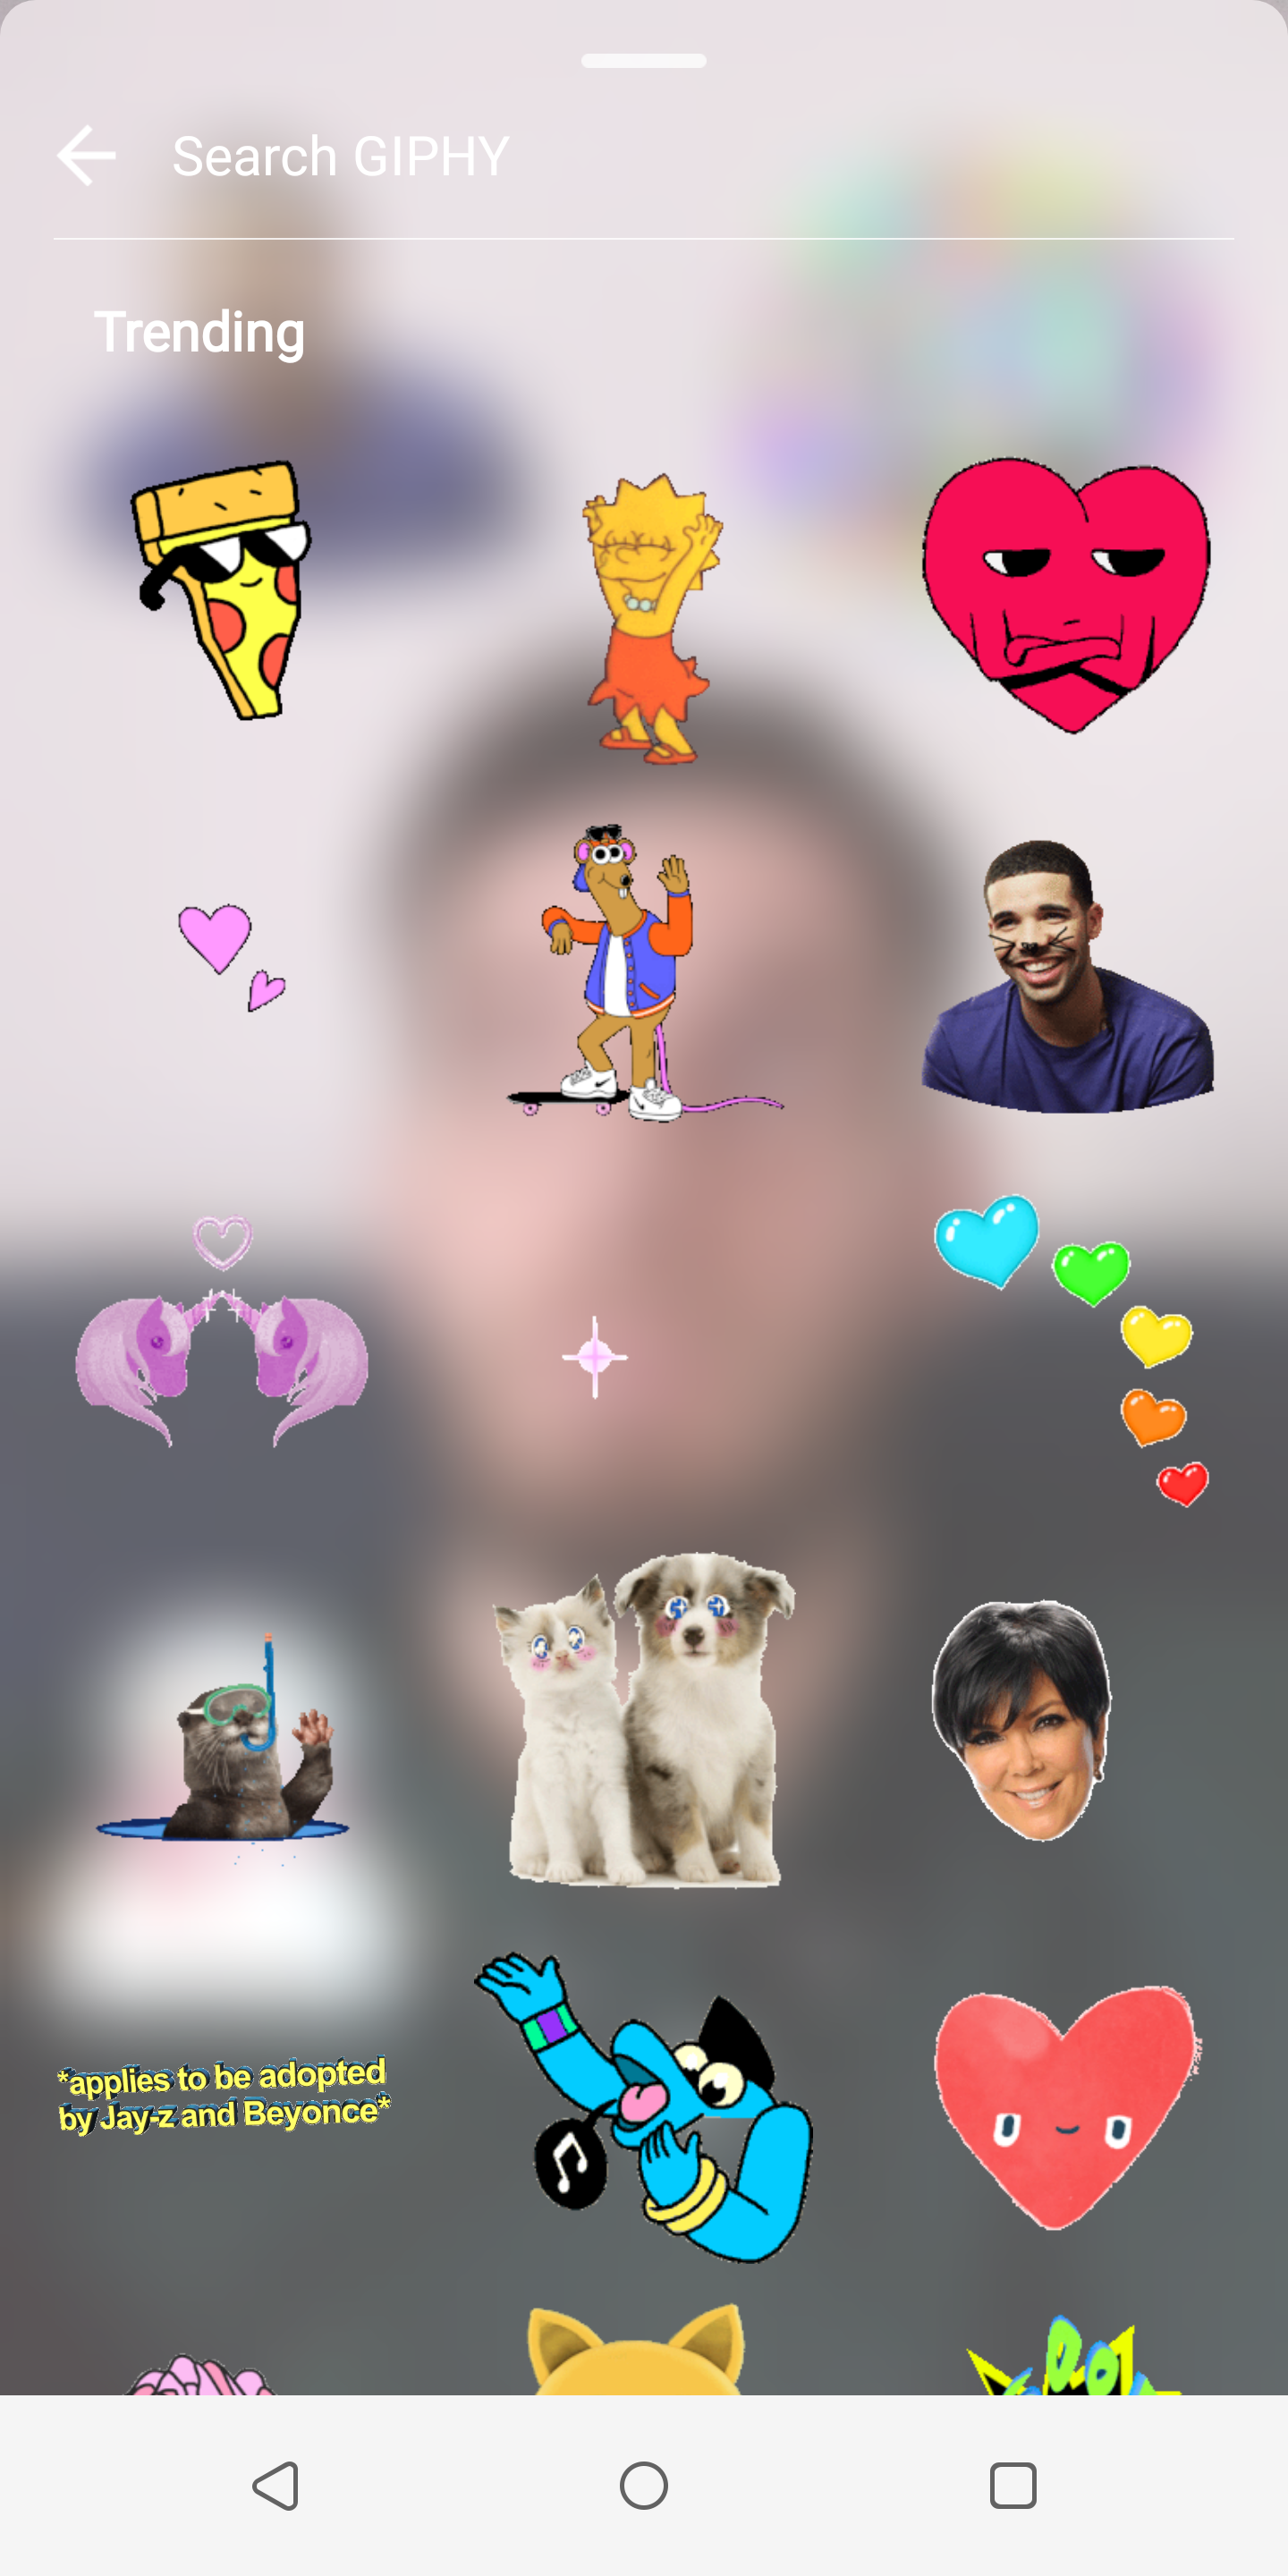 Tapping that brings up a searchable list of animated gif stickers that can be superimposed on your creation apparently there are hundreds of thousands to